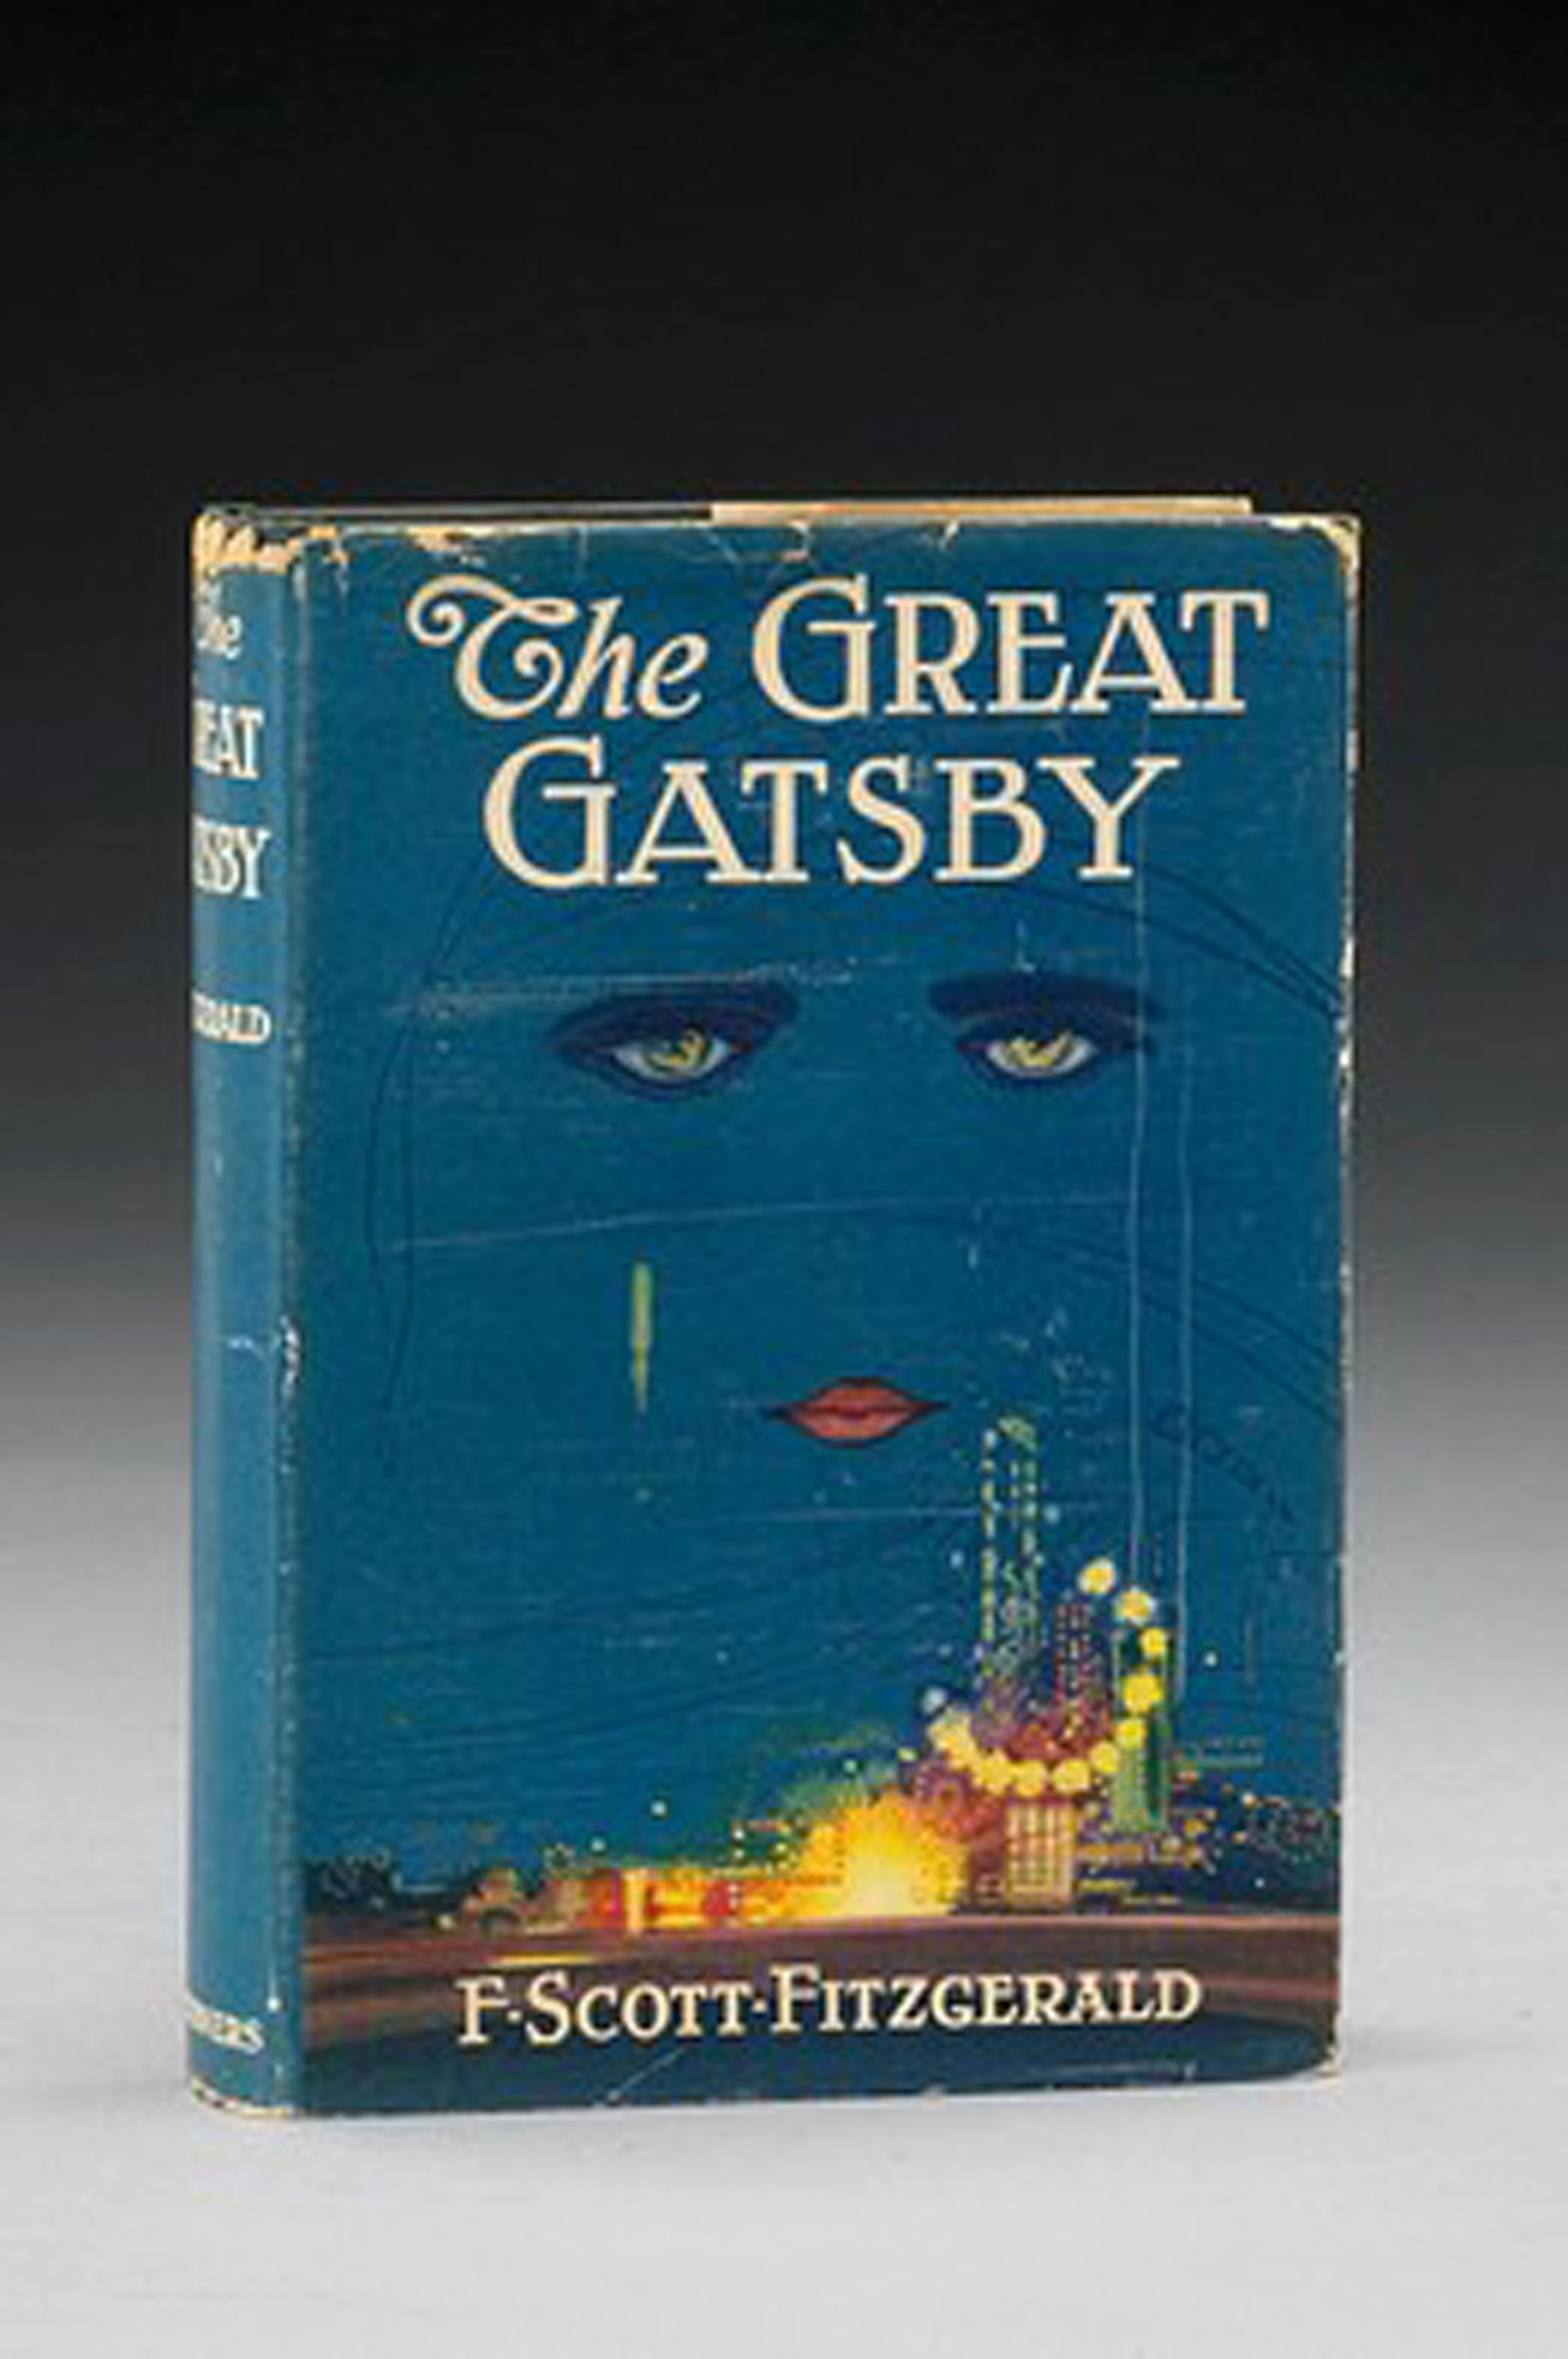 great gatsby book report Immediately download the the great gatsby summary, chapter-by-chapter analysis, book notes, essays, quotes, character descriptions, lesson plans, and more - everything you need for studying or teaching the great gatsby.